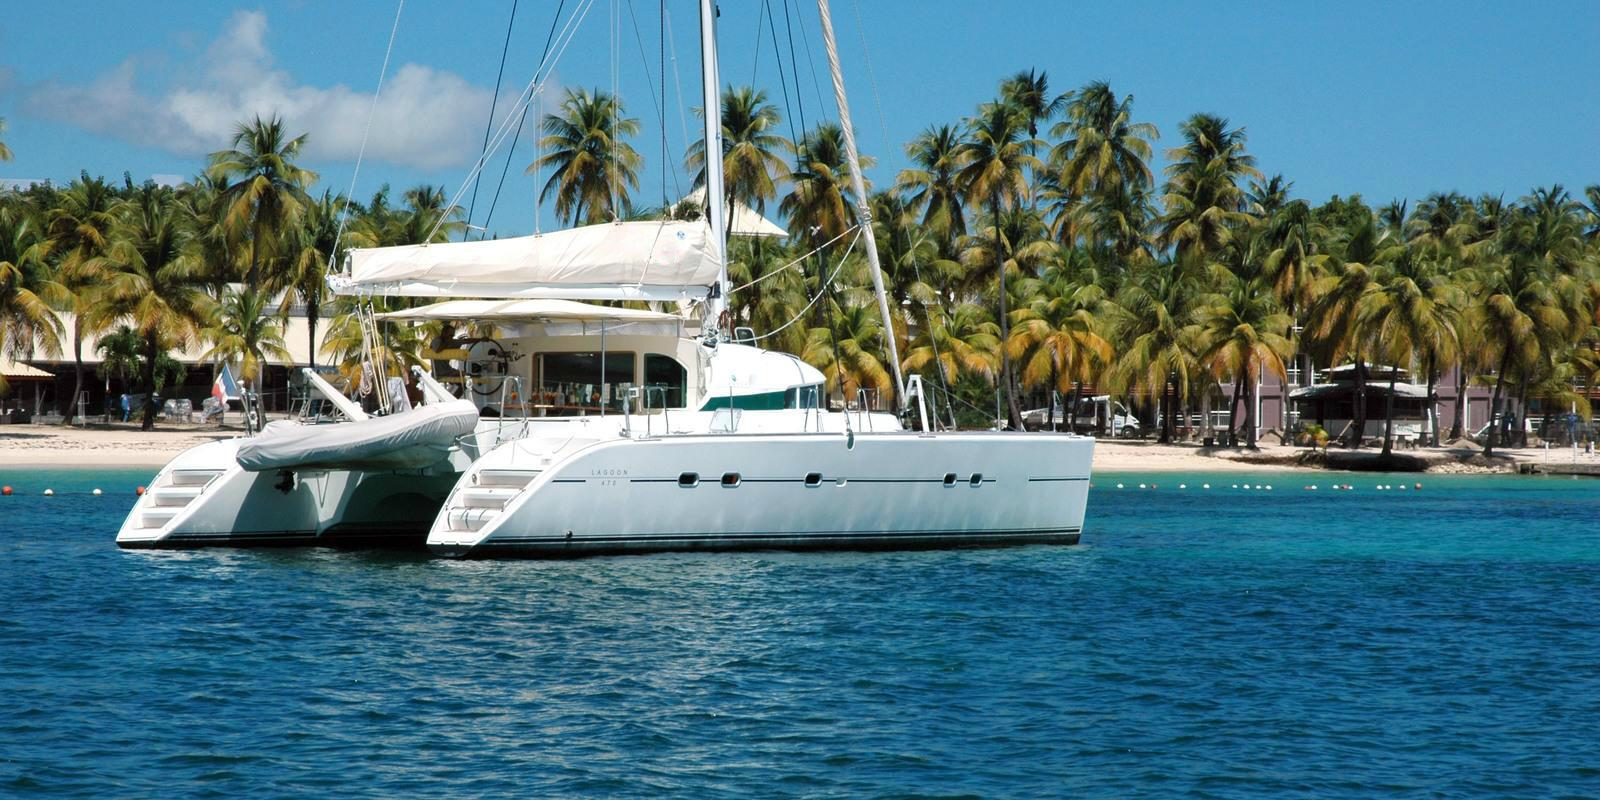 Discover Guadeloupe on a spacious catamaran - All Inclusive with cook